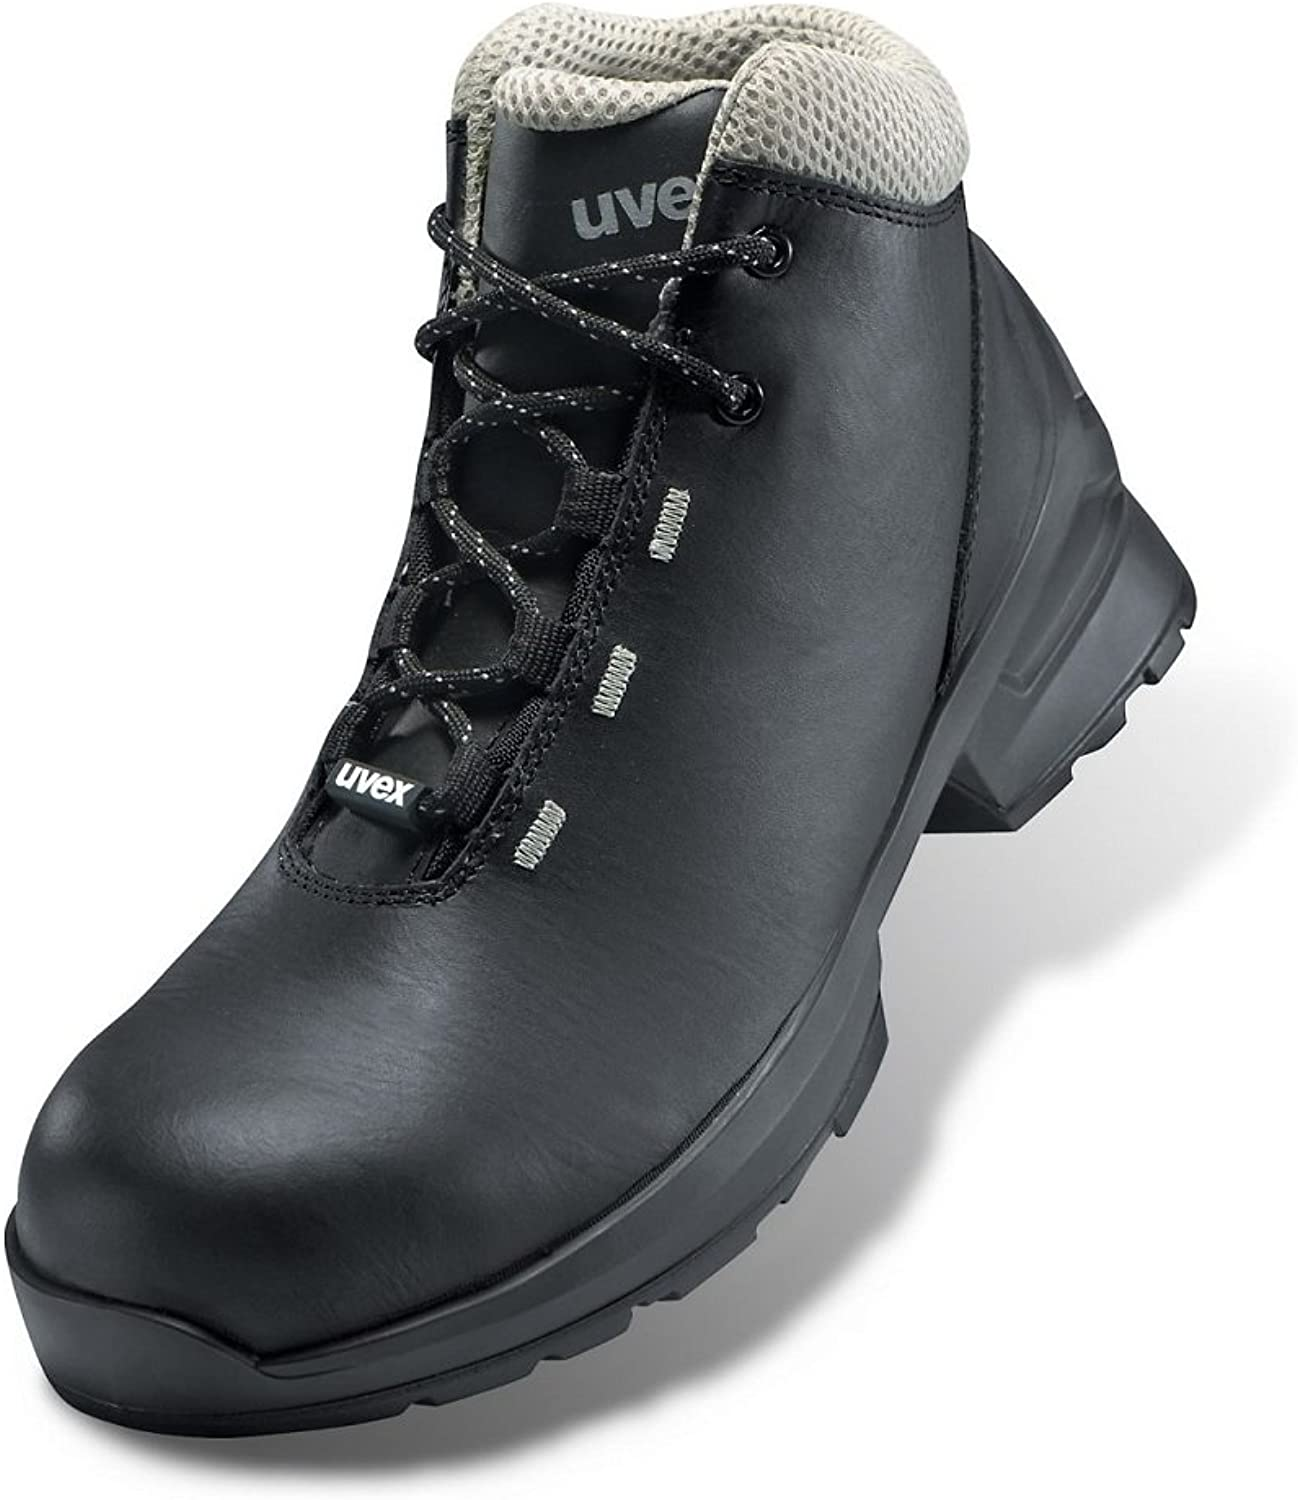 Uvex 1 Black Leather S3 SRC Safety Work Boots Metal-Free ESD Rated